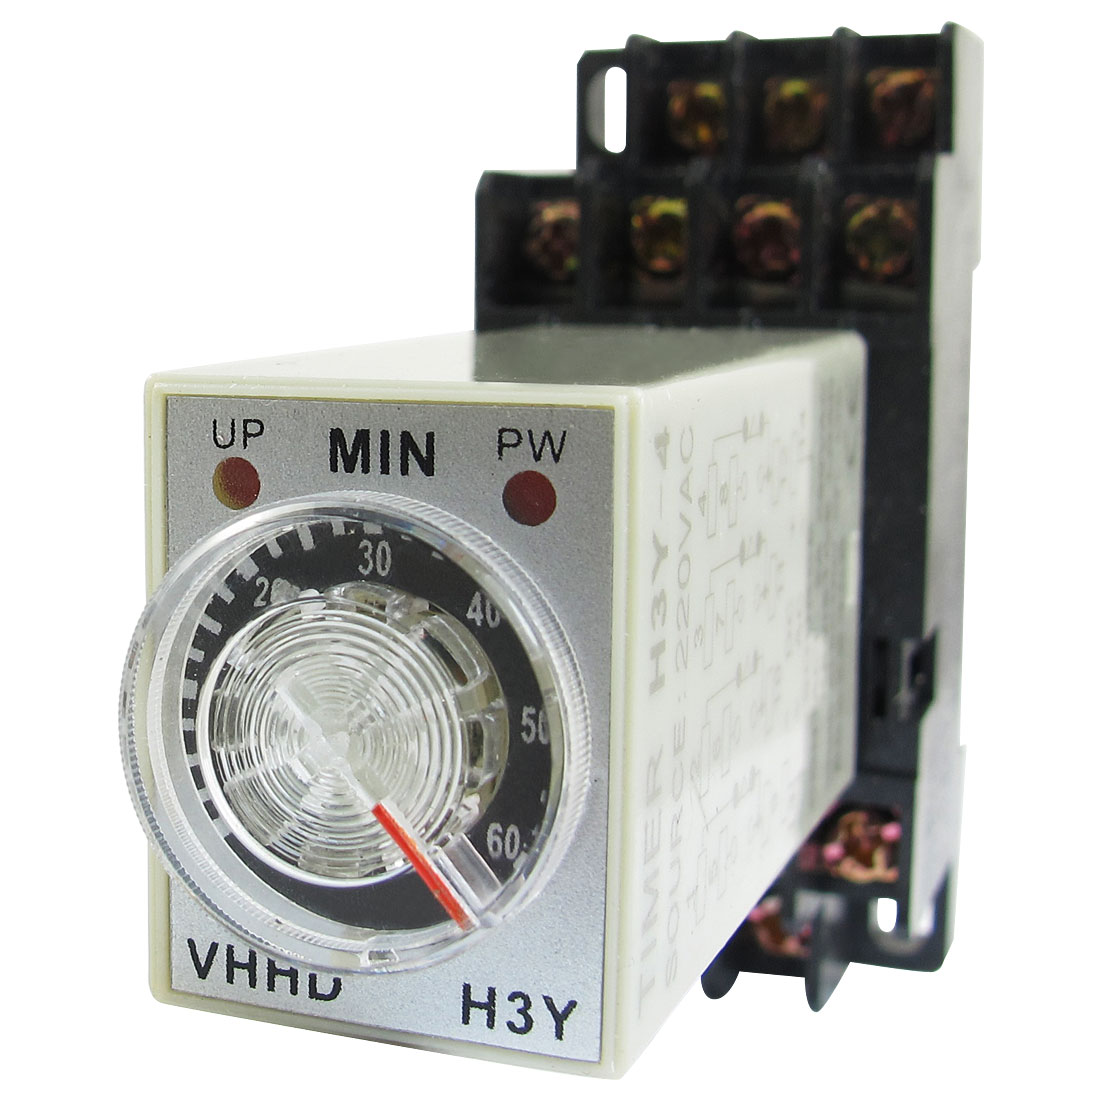 H3Y-4 LED Indicator Power Timing Relay 4PDT 14 Pin 0-60m 60 Min 220V AC w Base